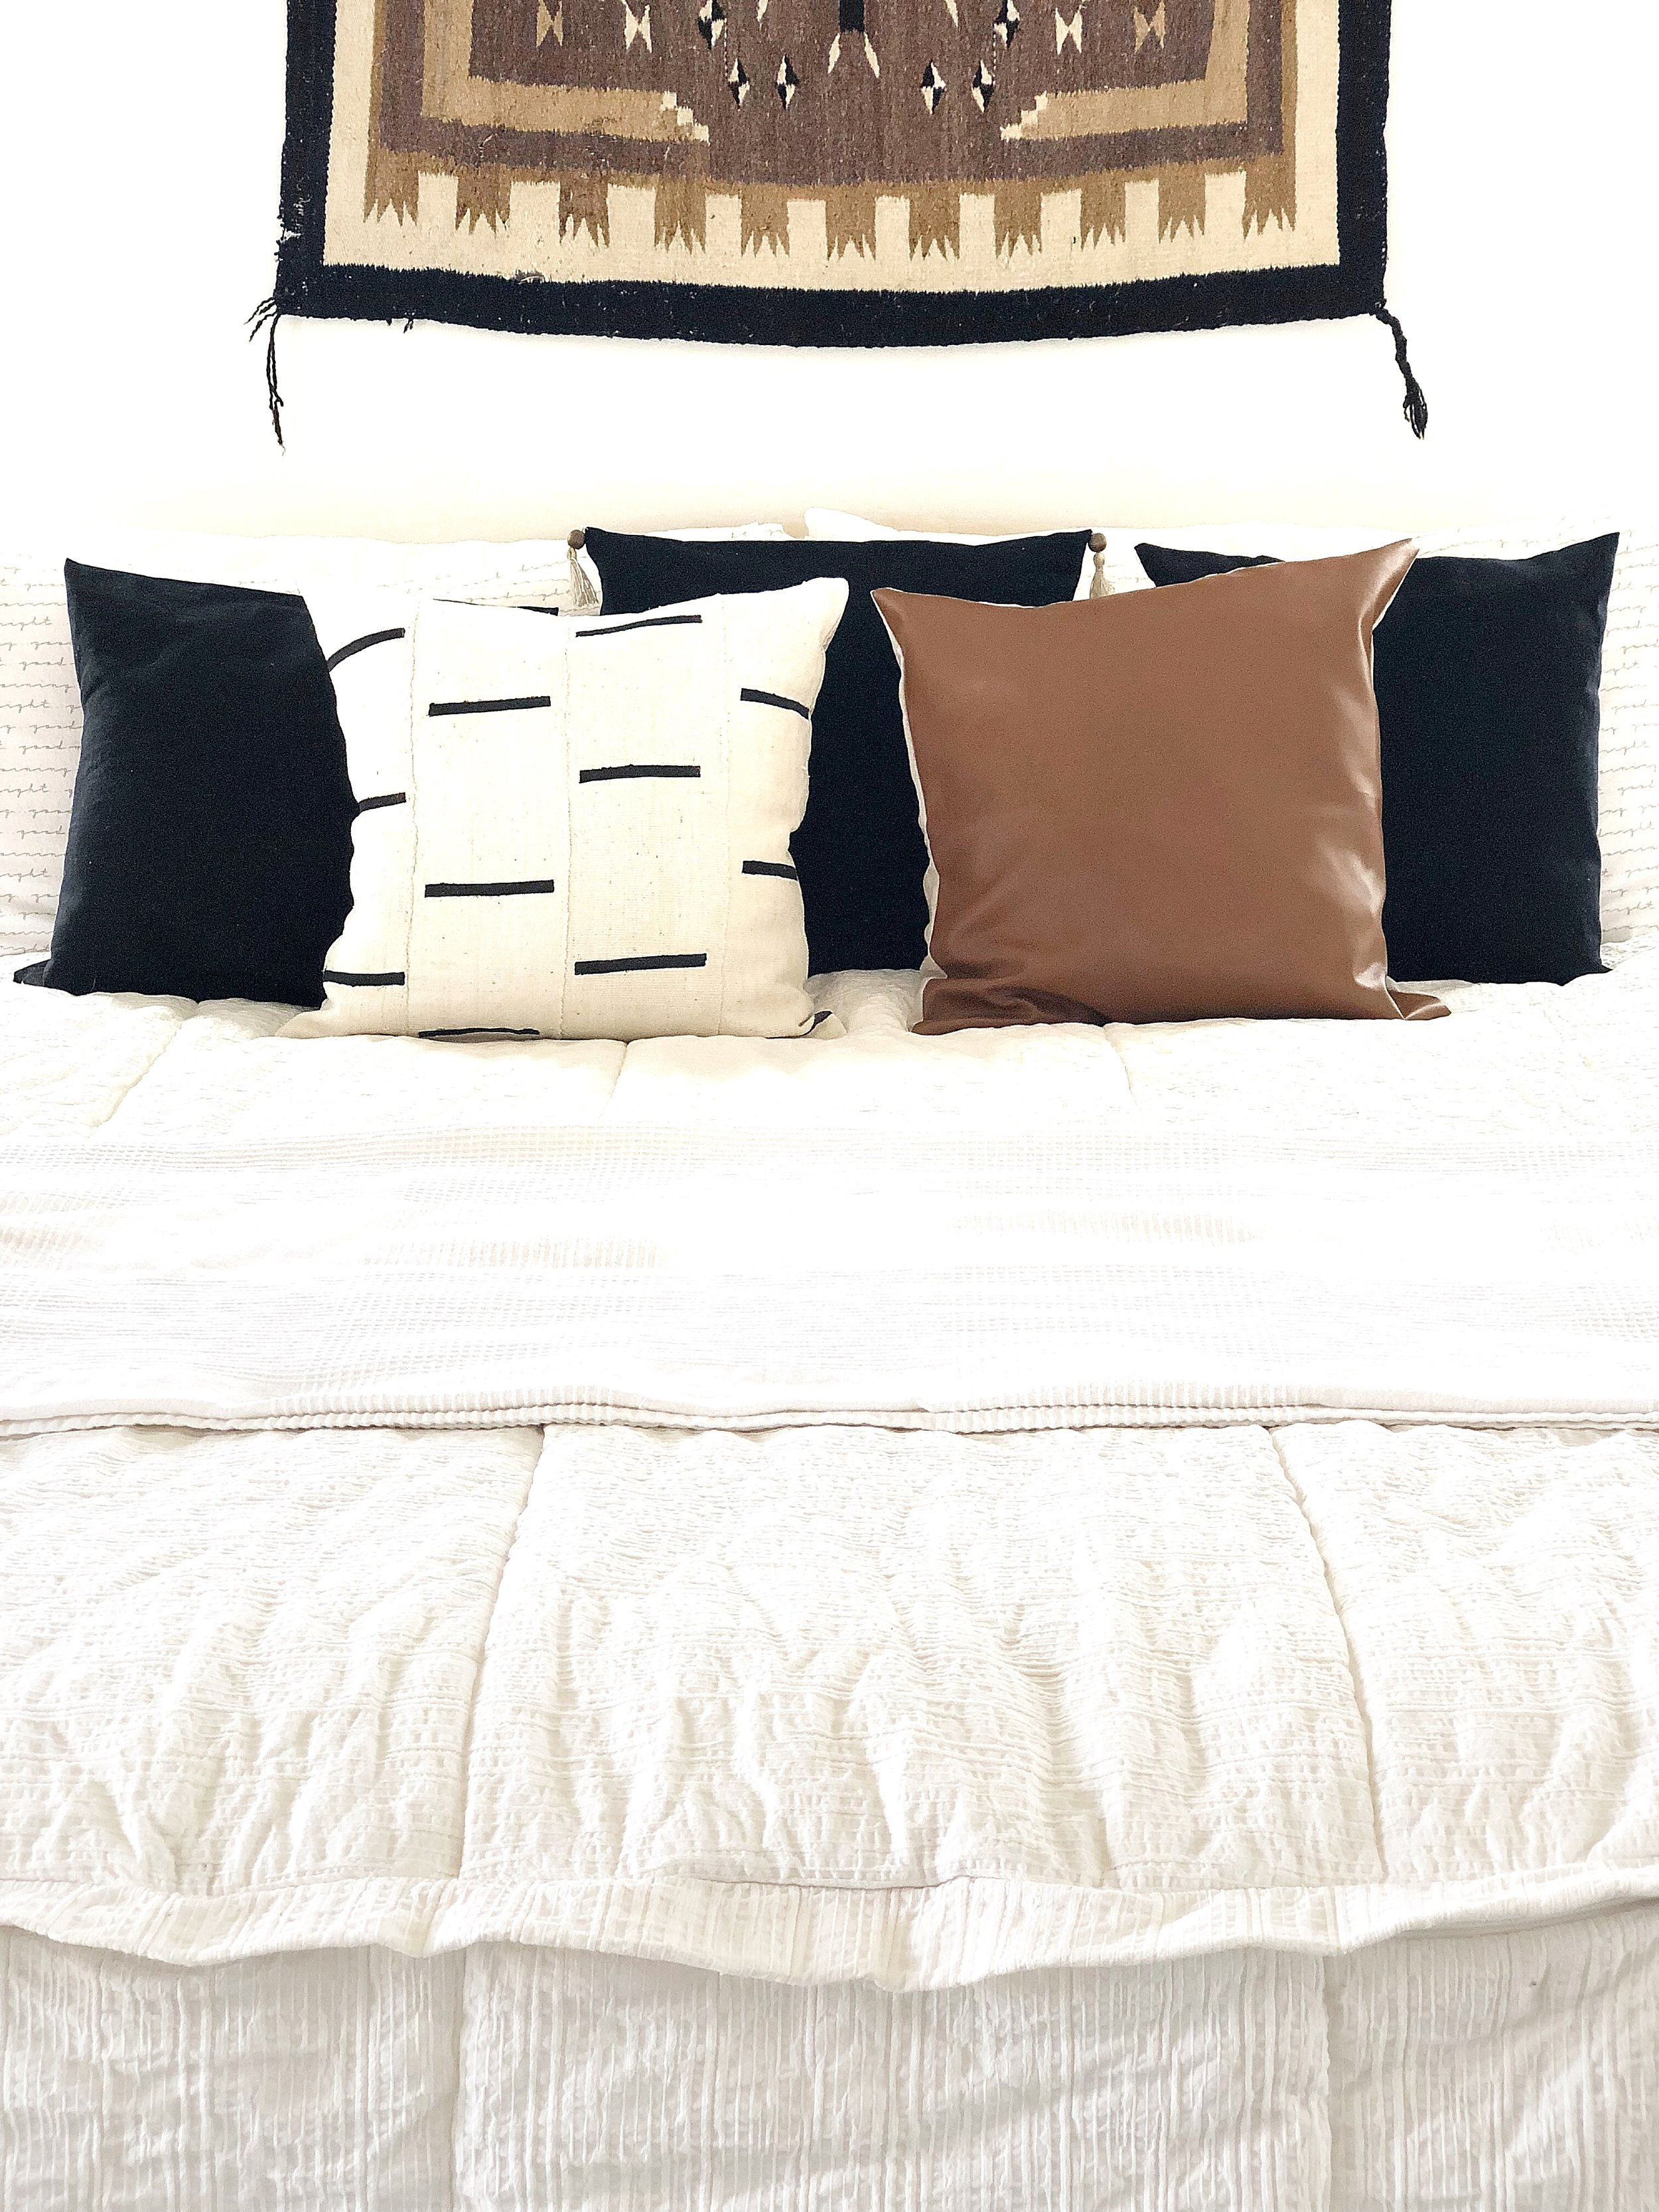 Pillows - Black- My diy pillow covers I made out of curtains.Mud cloth- Linen & Ivory/MaddexFaux leather- Linen & Ivory